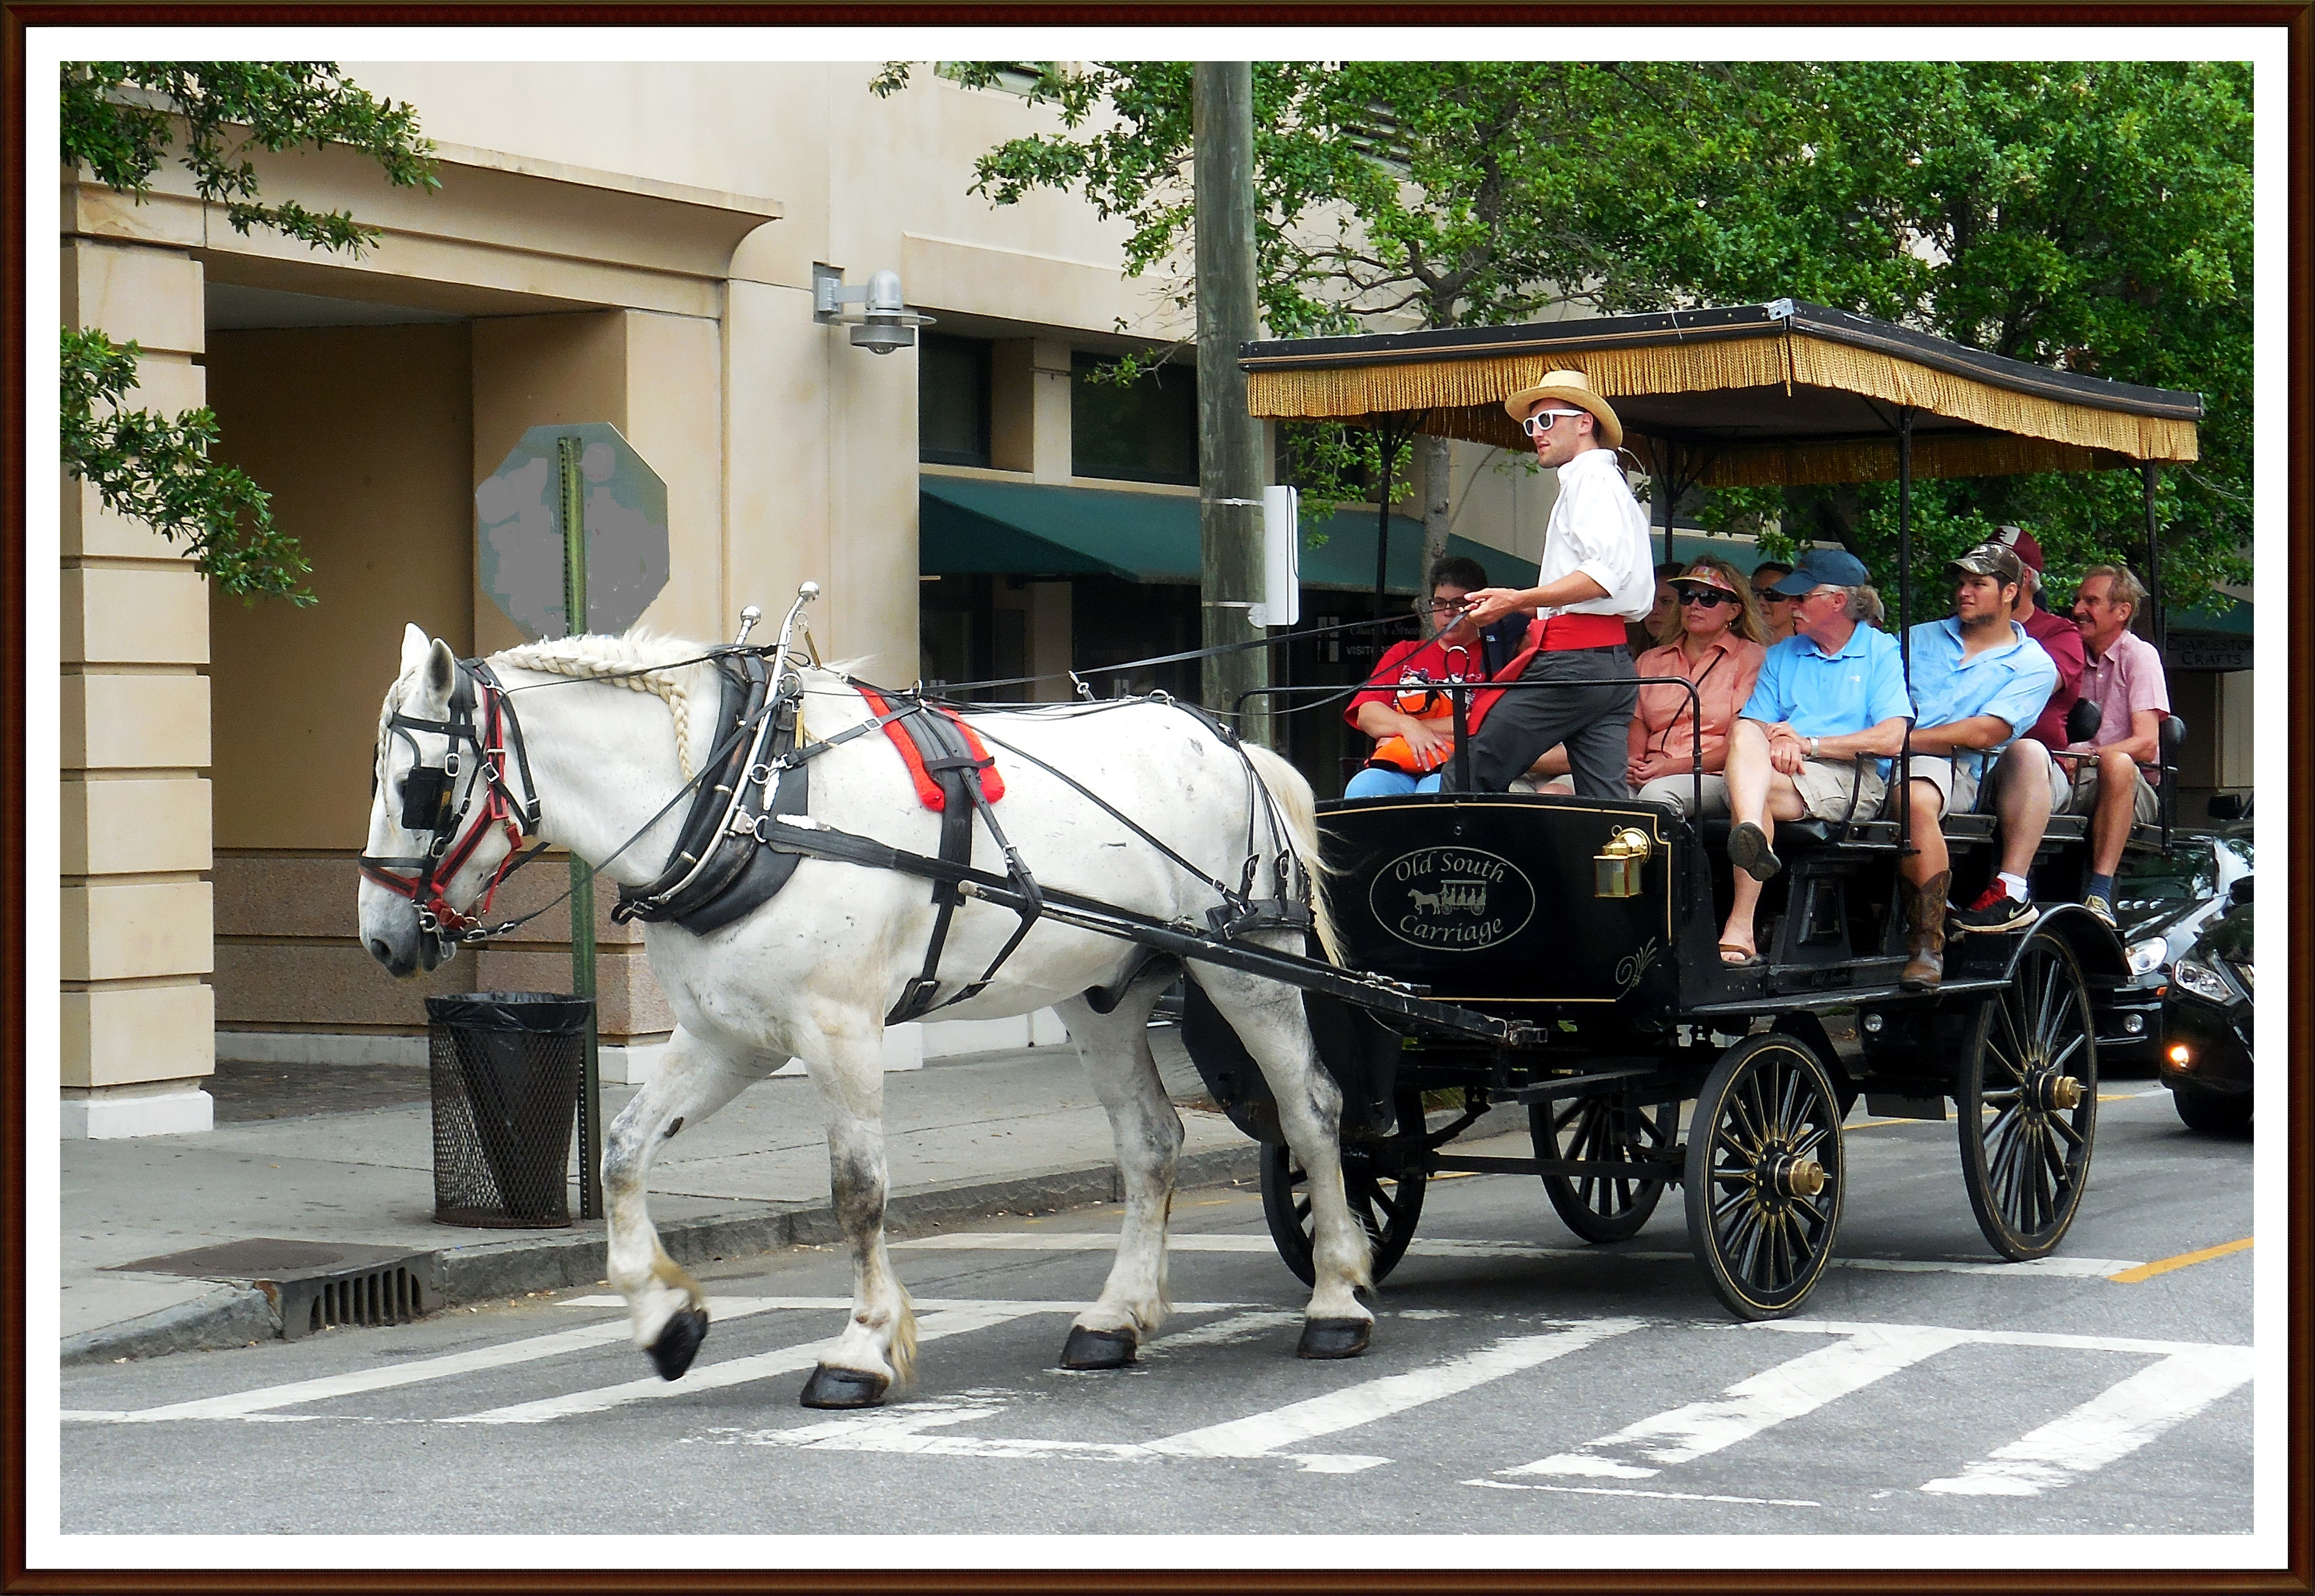 Horse and Carriage in the French Quarter